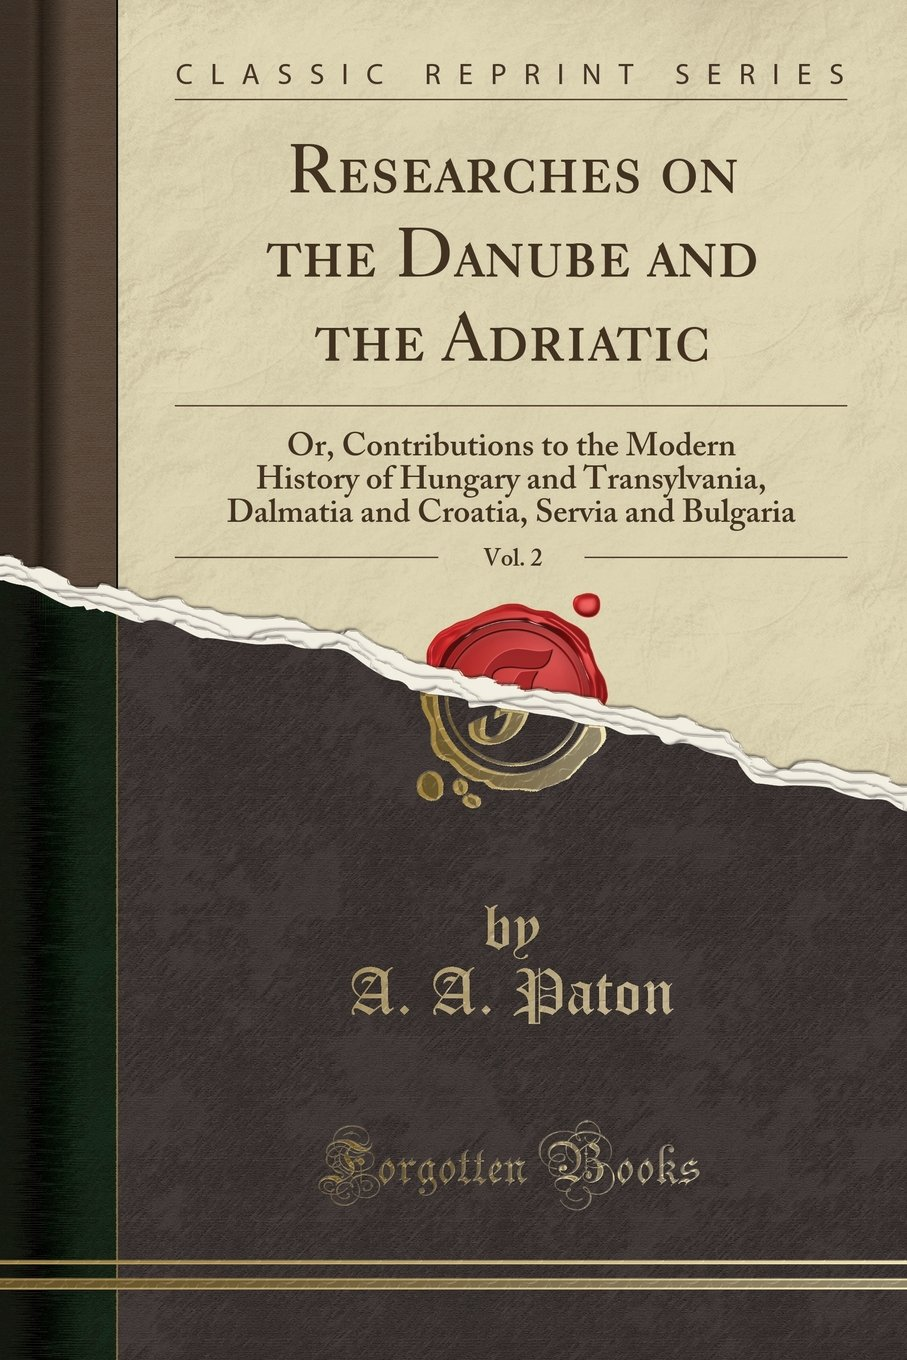 Researches on the Danube and the Adriatic, Vol. 2: Or, Contributions to the Modern History of Hungary and Transylvania, Dalmatia and Croatia, Servia and Bulgaria (Classic Reprint) pdf